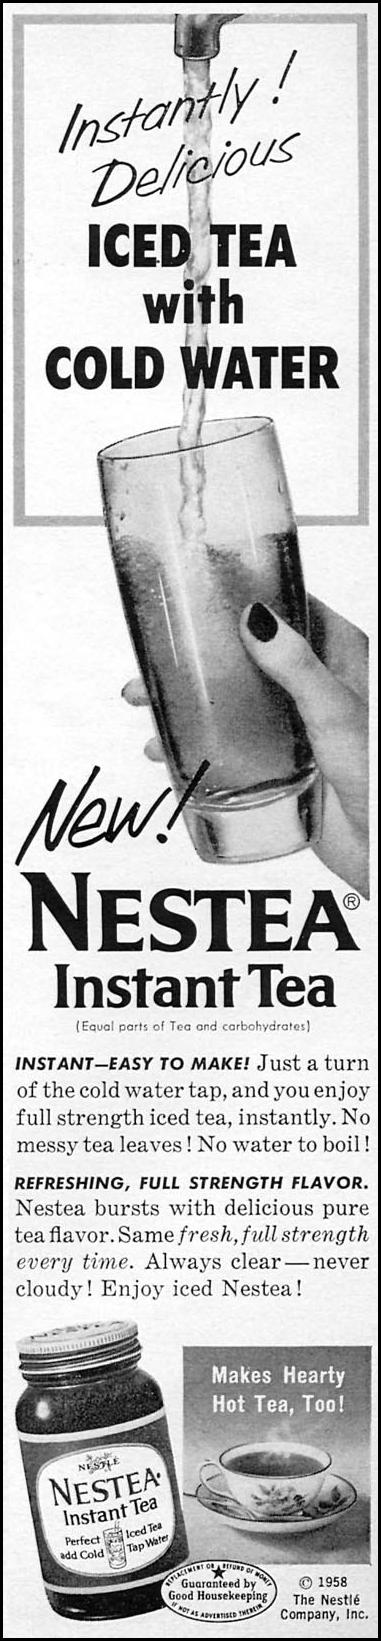 NESTEA INSTANT TEA WOMAN'S DAY 06/01/1958 p. 15